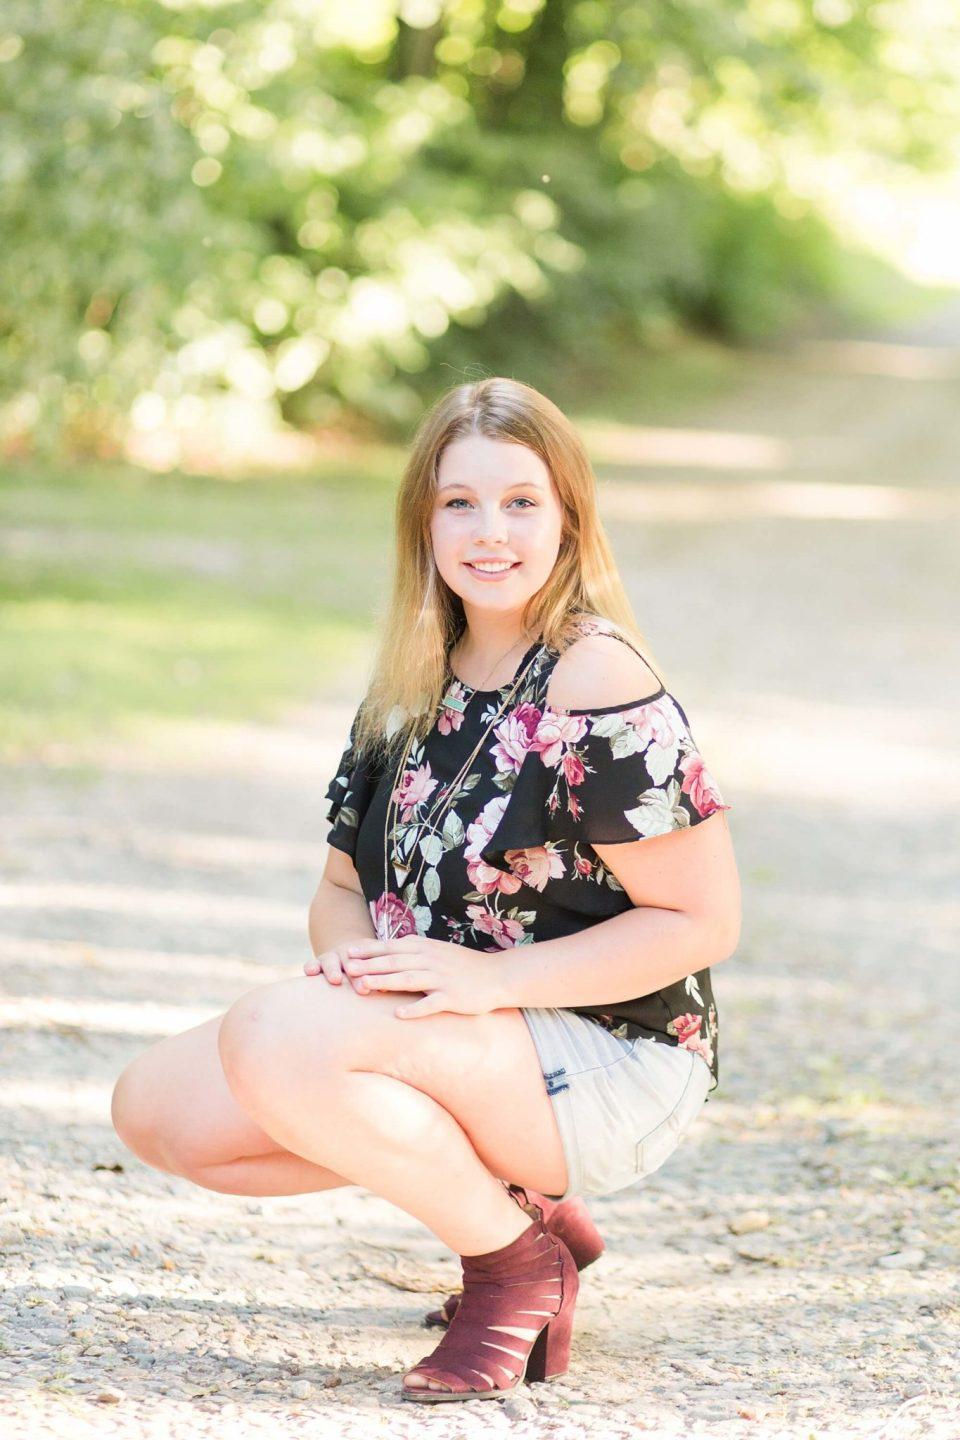 During a Lakeside Senior Portrait Session, a girl crouches down in maroon heels and a floral shirt.